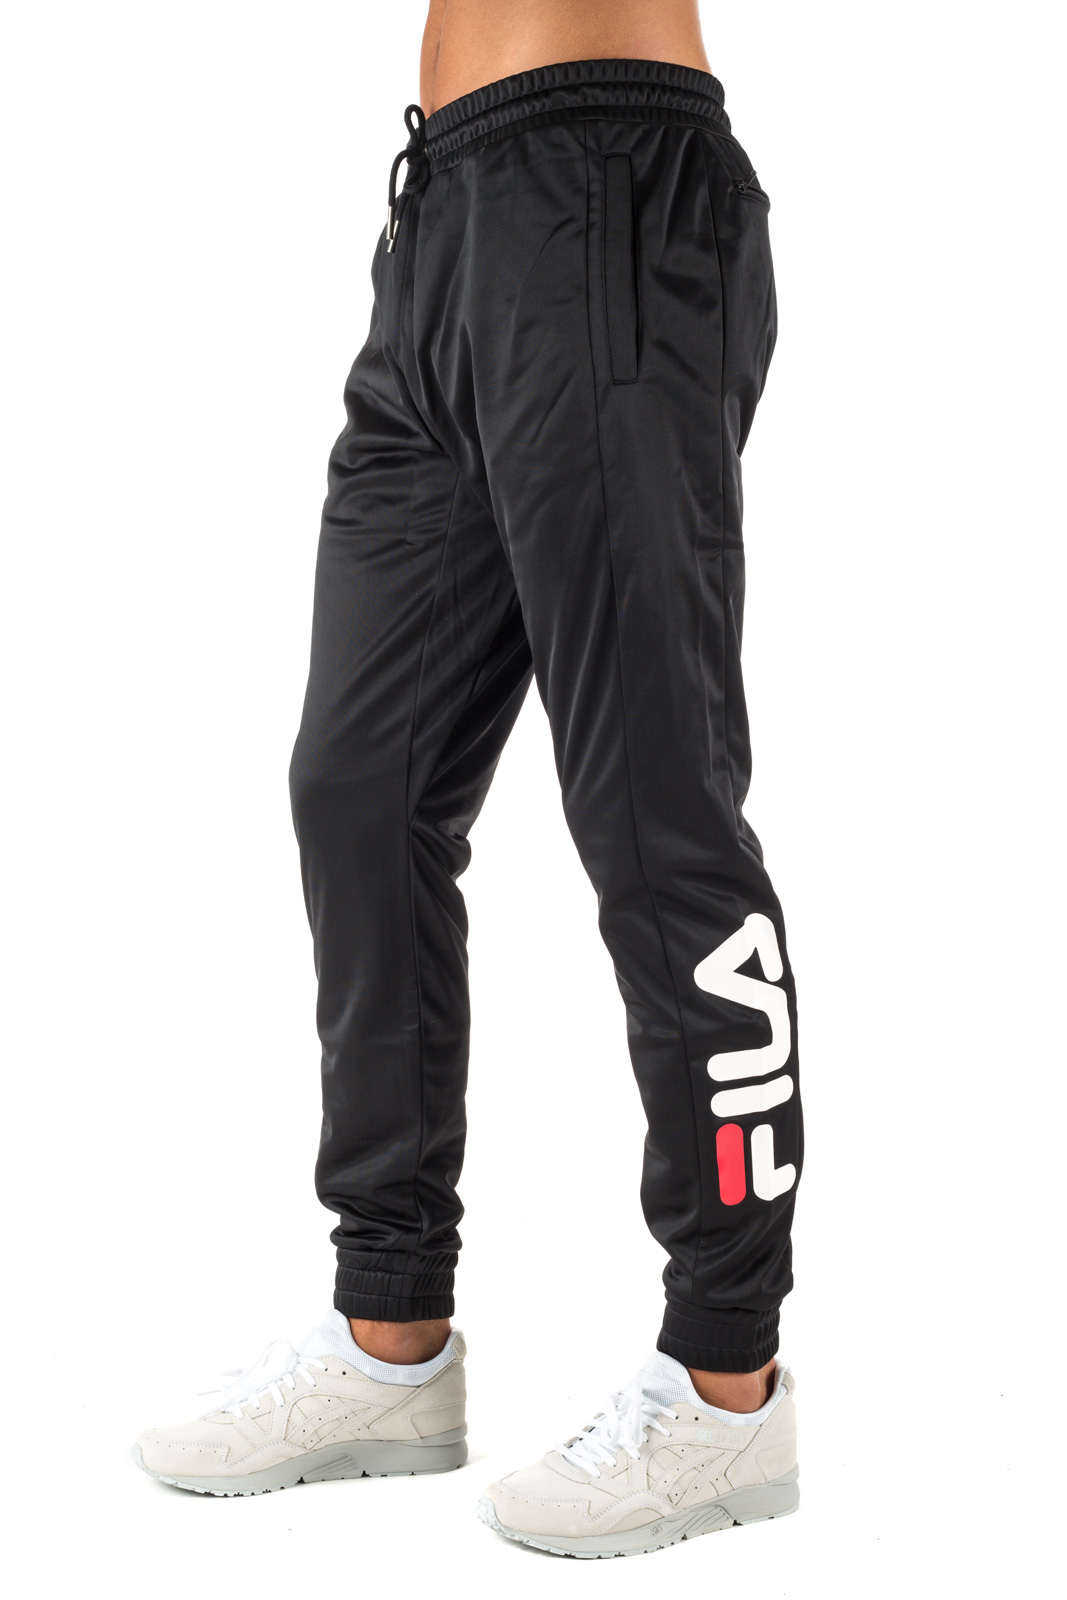 Fila - Transparent trousers with logo